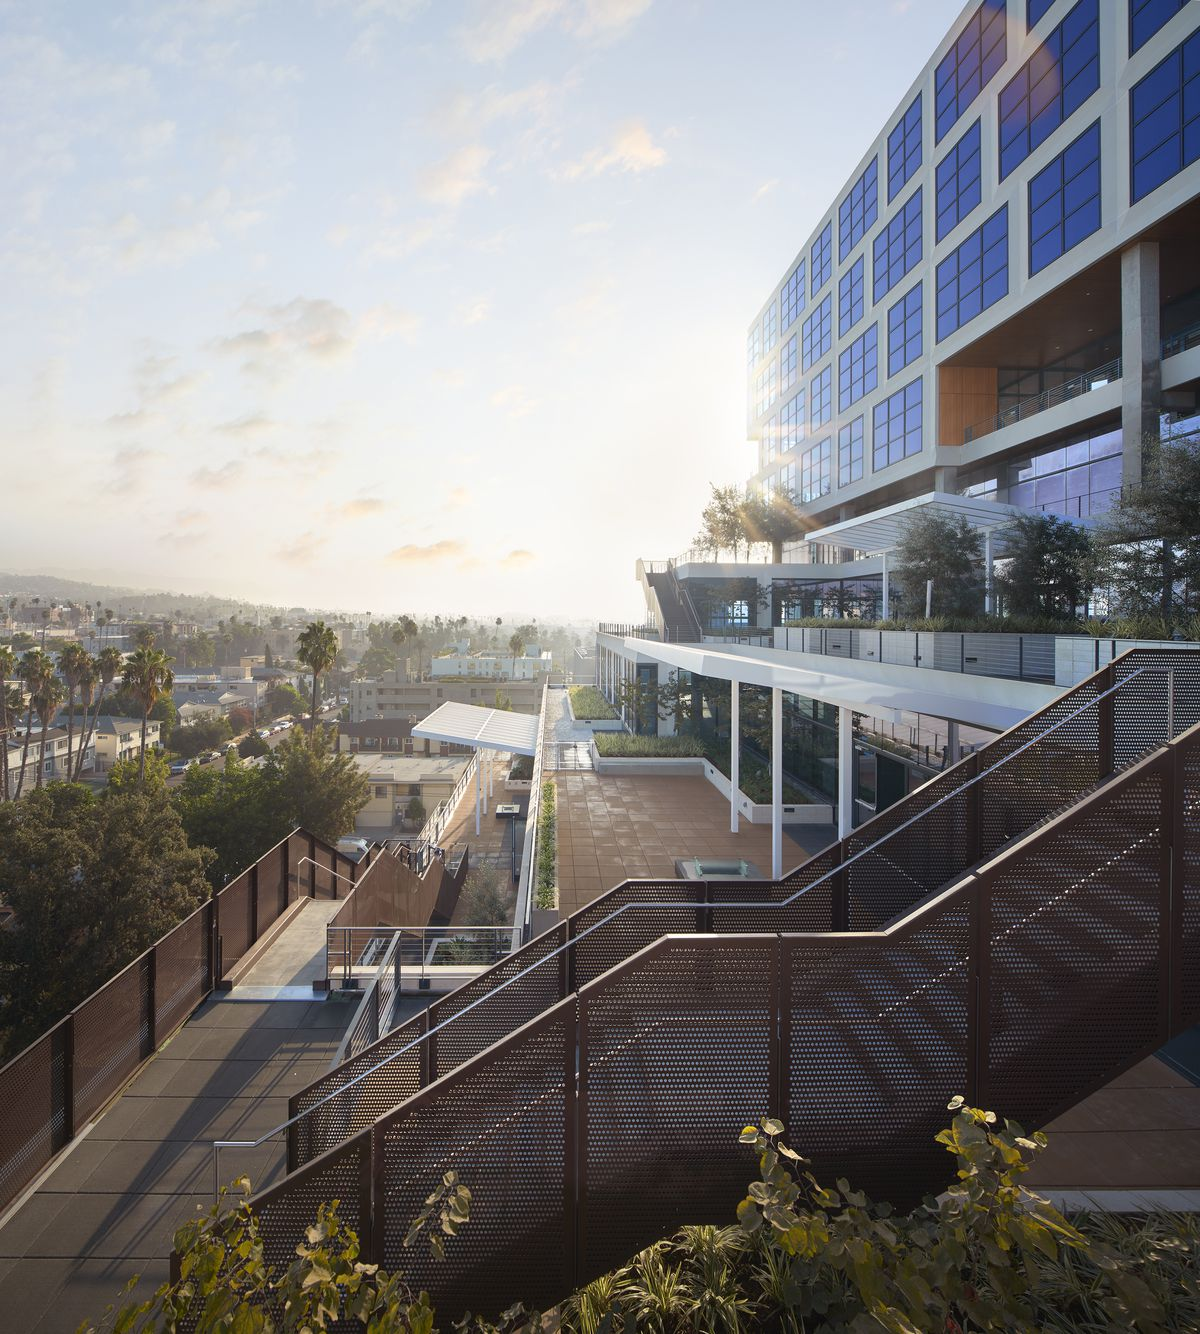 A rendering of terraces and staircases off the exterior of the building.